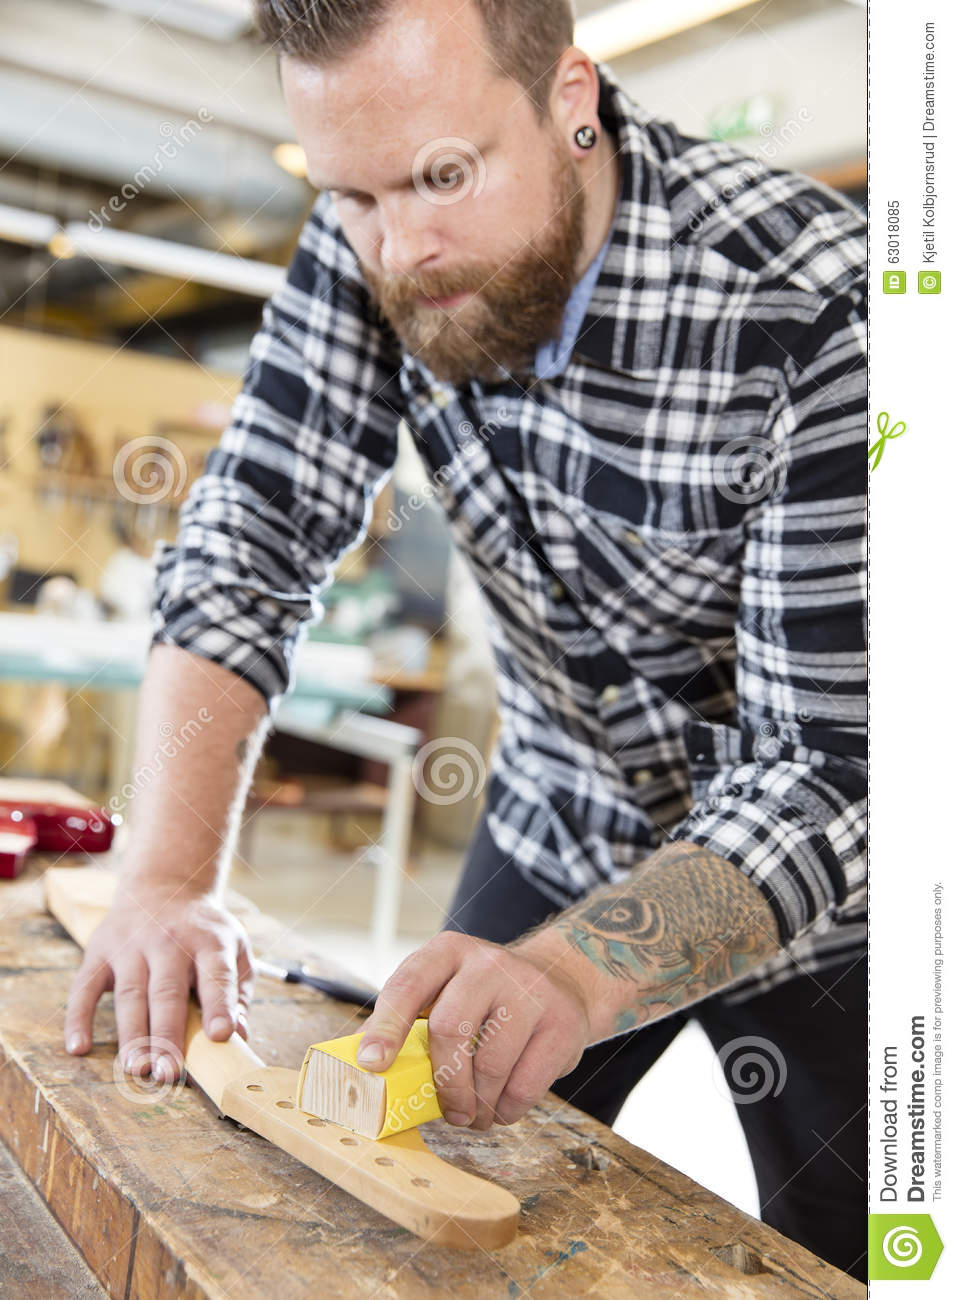 Carpenter sanding a guitar neck in wood at workshop stock for Working man tattoo